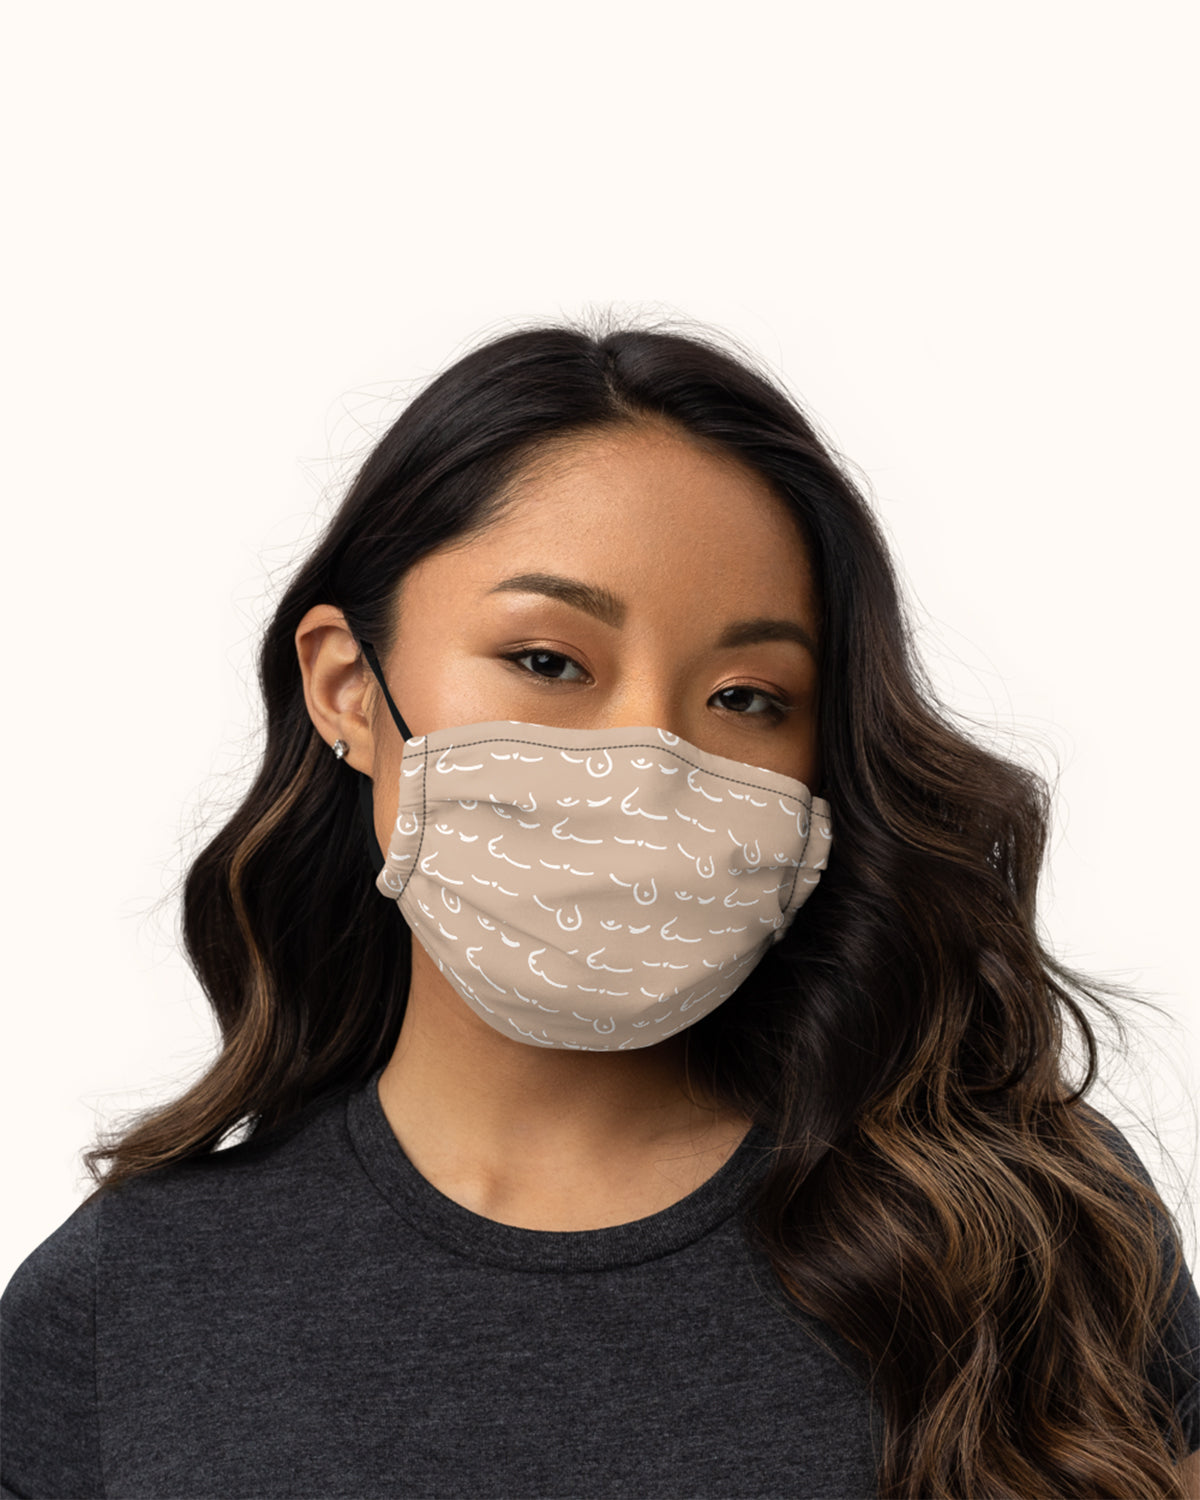 Sand, F(oo)B® printed facemask that has an adjustable nose wire and elastic bands.